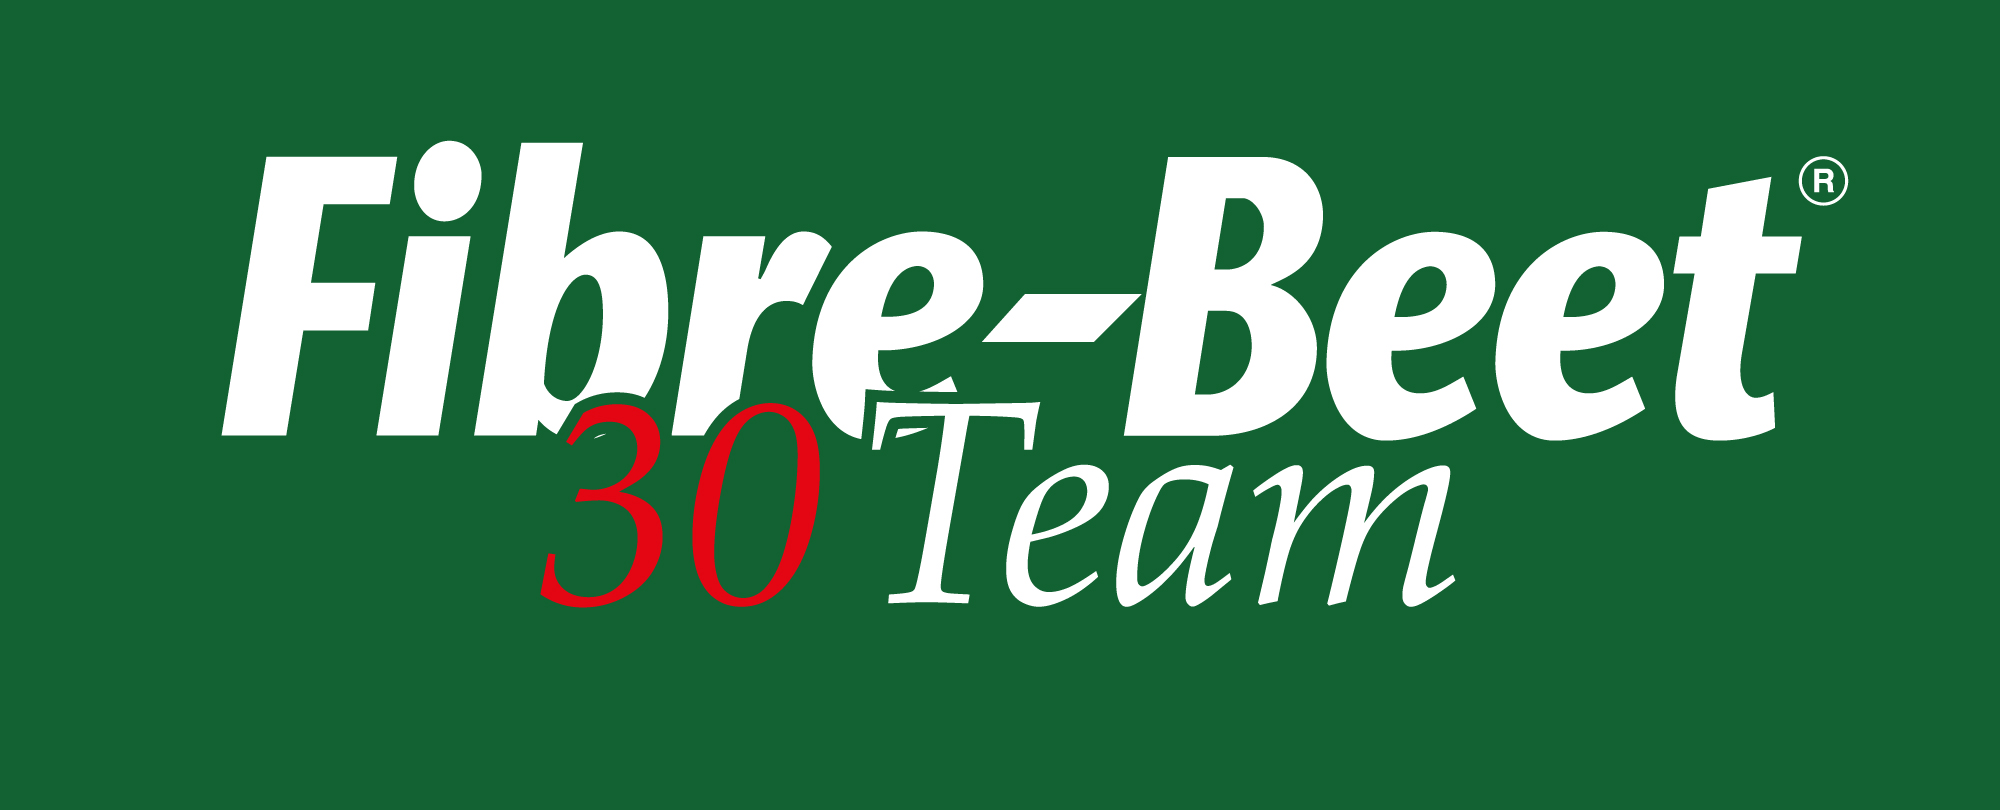 fibrebeet 30 logo on green bg - Fibre-Beet Sponsorship Opportunity